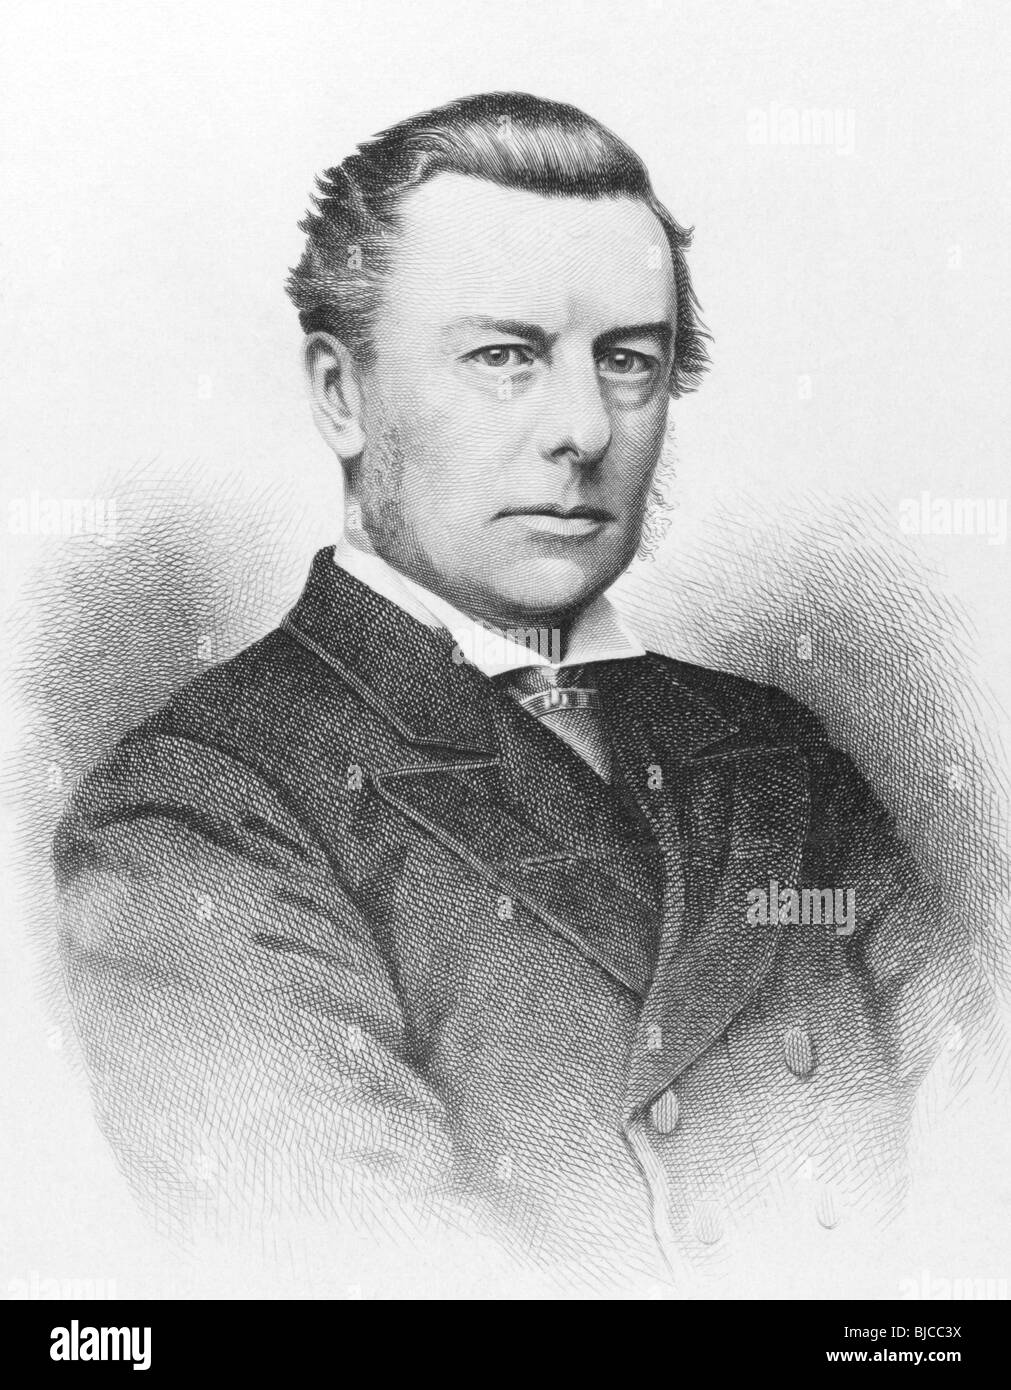 Joseph Chamberlain (1836-1914) on engraving from the 1800s. Influential British businessman, politician and statesman. - Stock Image